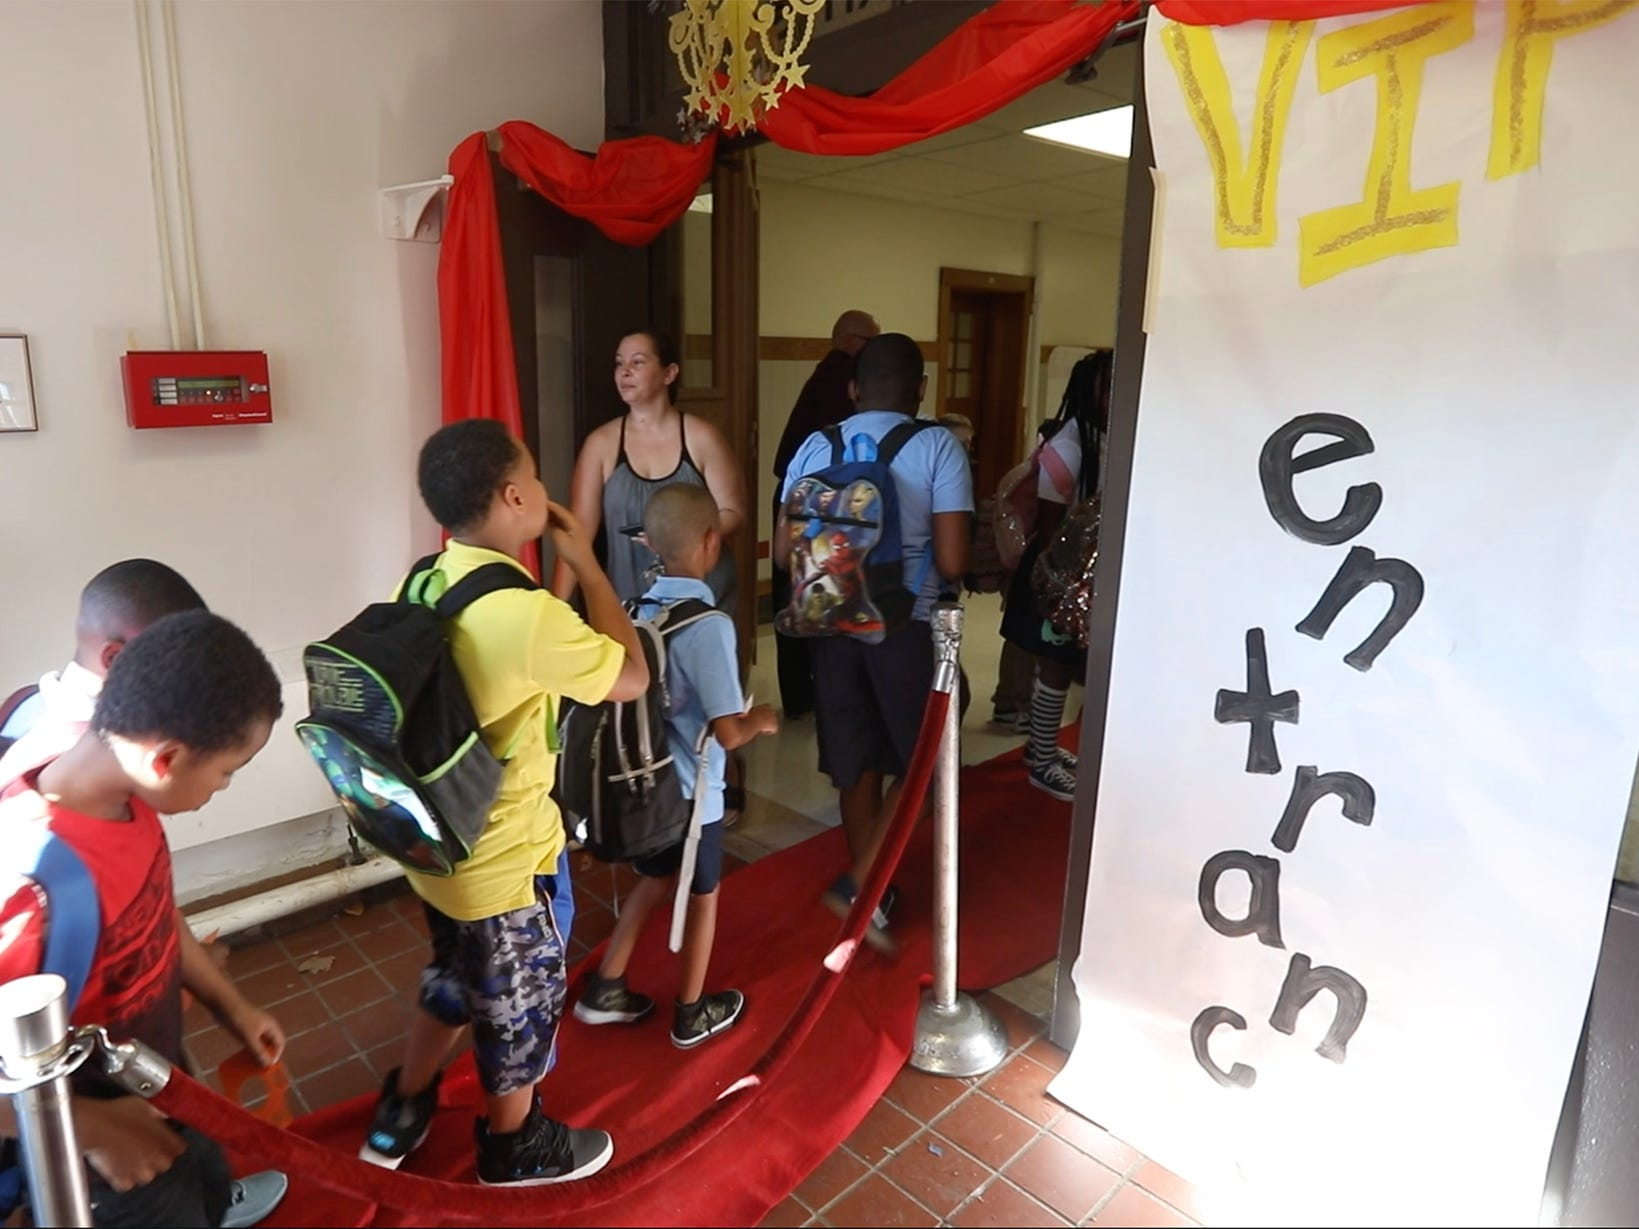 The school had their entrances decorated giving the students the red carpet treatment.